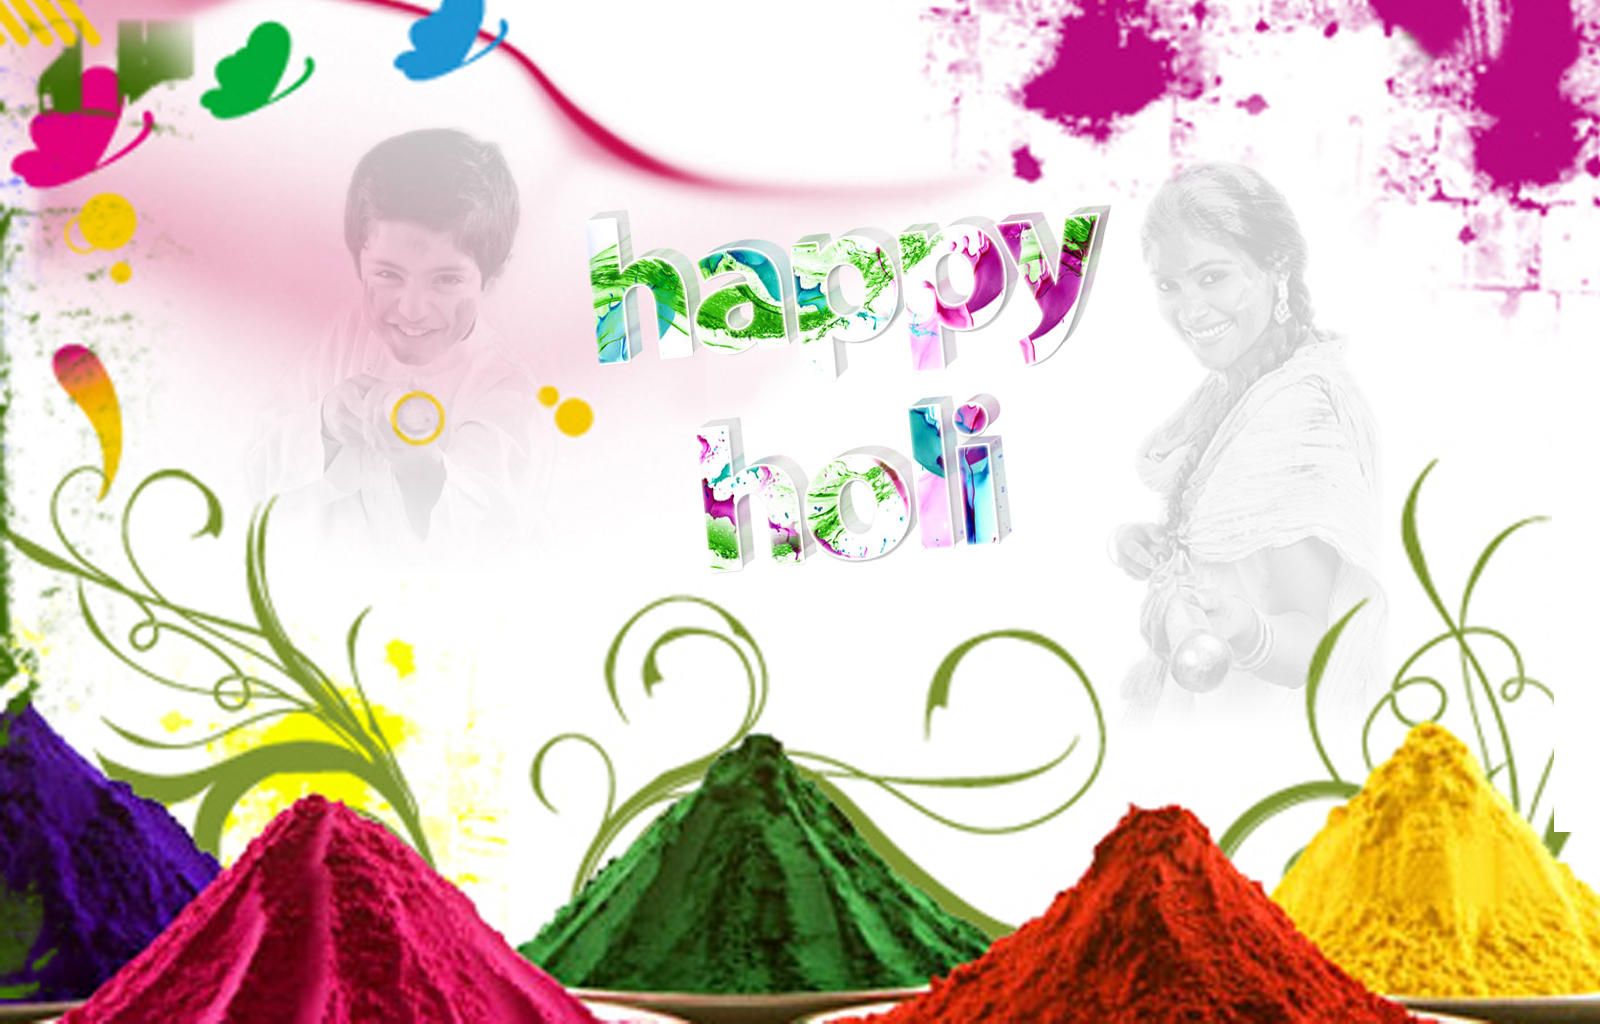 Holi Wallpaper HD Download